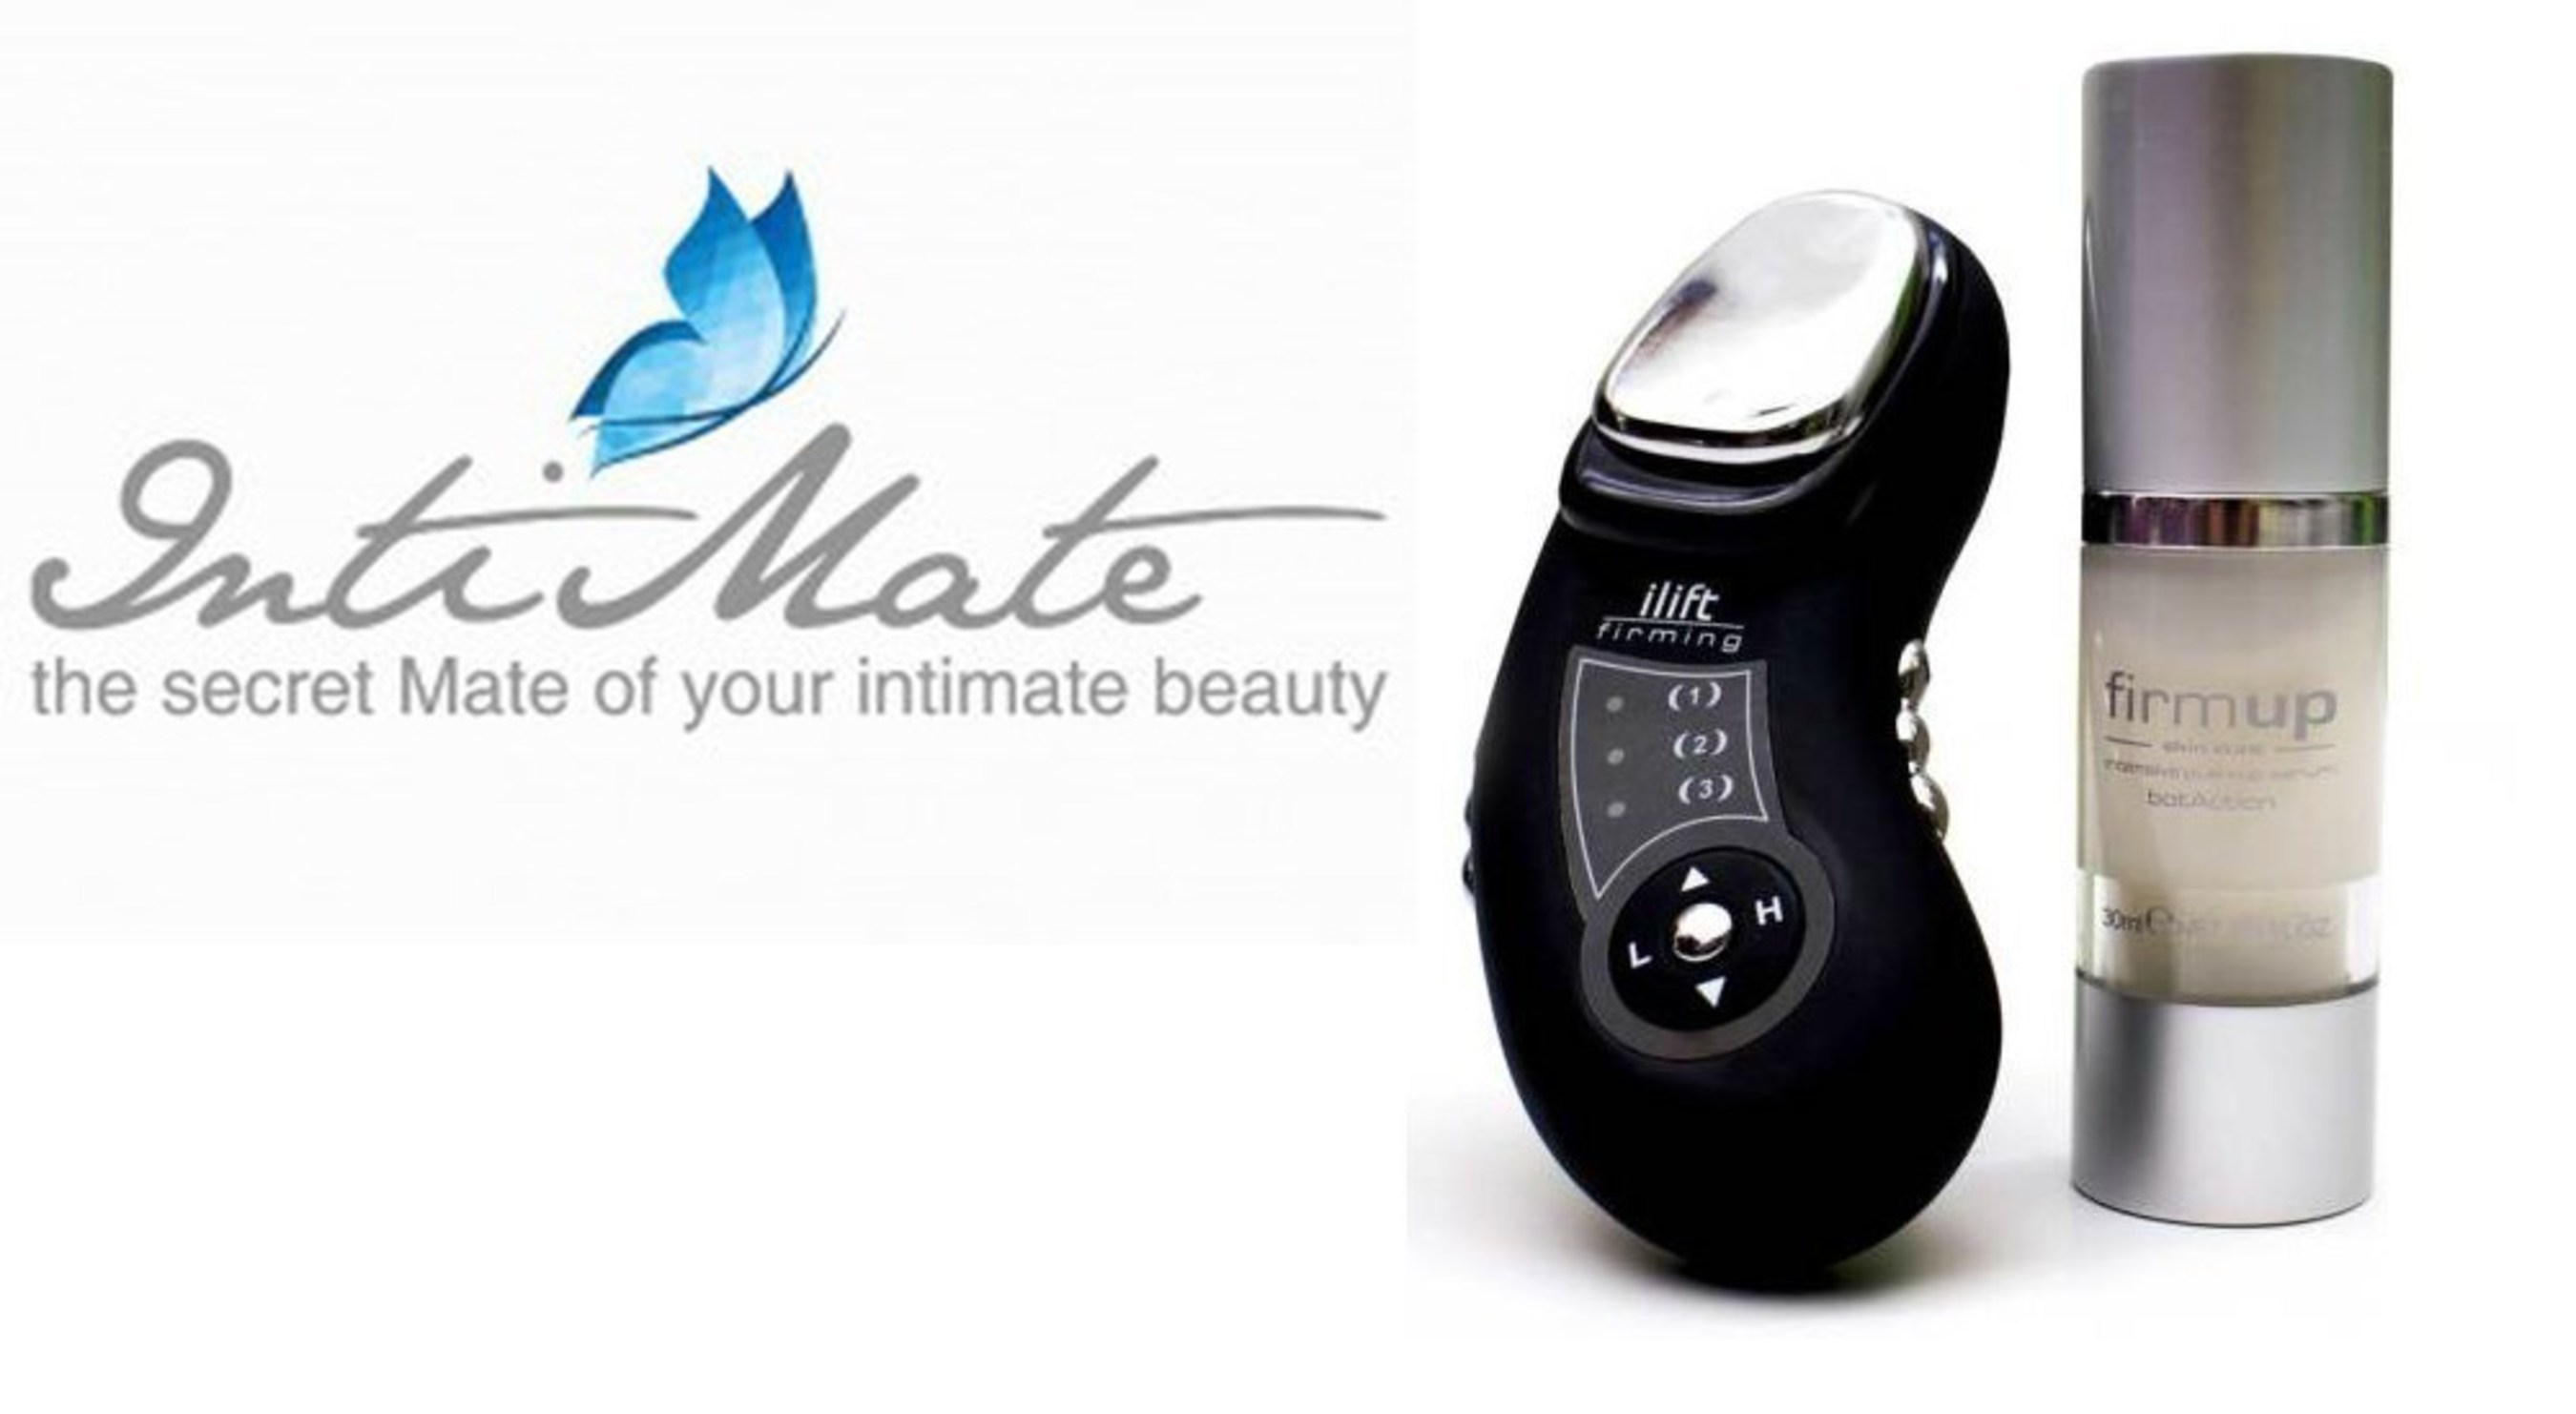 IntiMate Firming Gives Women Firm Beautiful Breasts Without Surgery